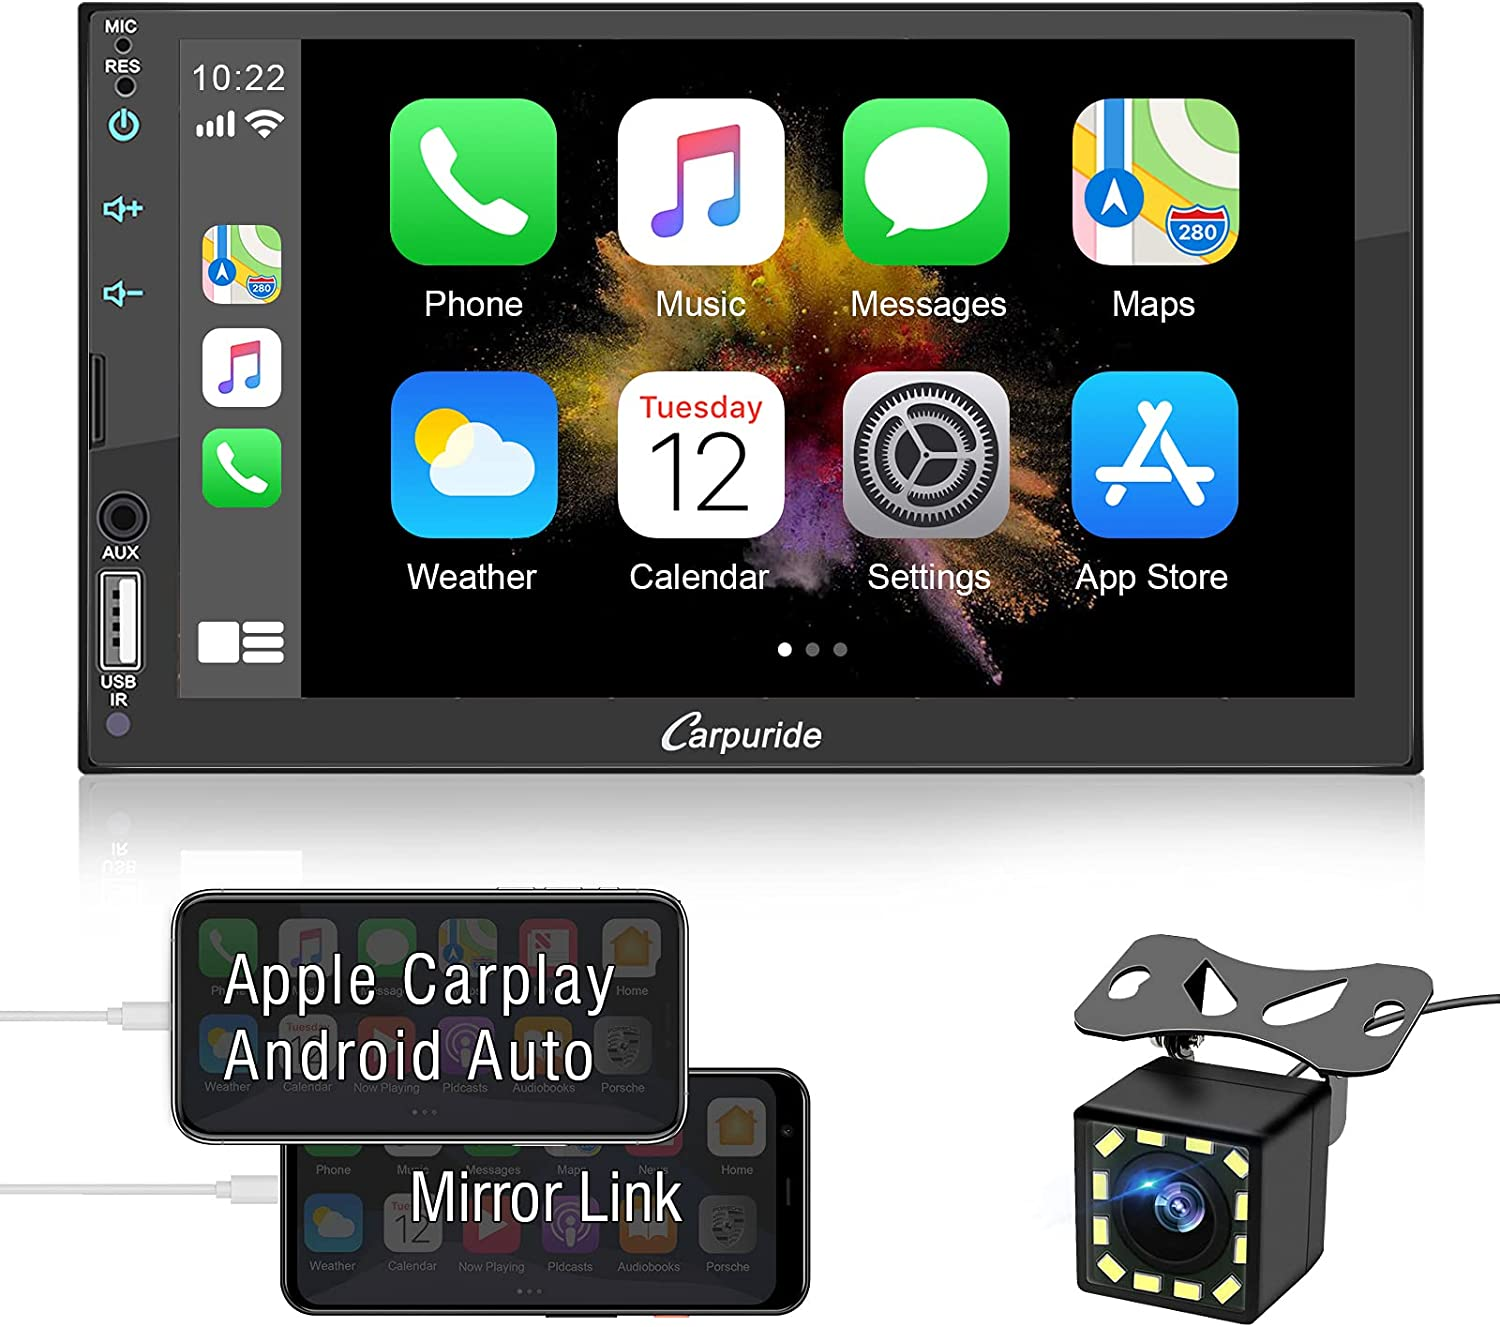 Car Stereo Compatible with Apple Carplay and Android Auto, 7 Inch Double Din Car Audio Receiver with Capacitive Touchscreen, Bluetooth, Mirror Link, Backup Camera, USB/TF/AUX, A/V In, SWC, FM/AM Radio